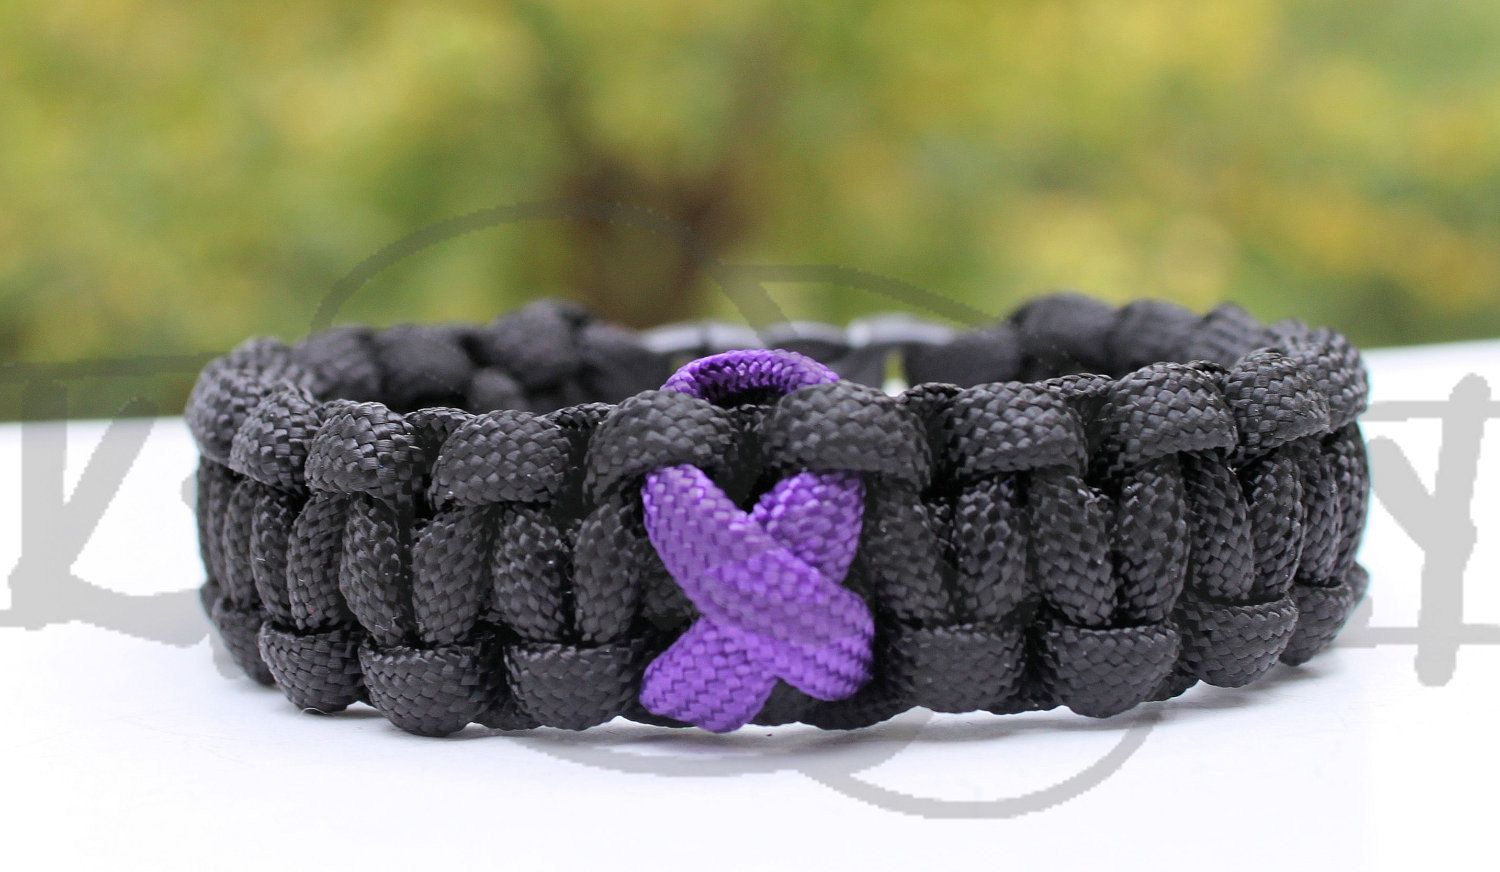 cancer testicular keychain boot pin hodgkin encouragement ribbon bracelet lymphoma s purple cowboy hodgkins awareness violet